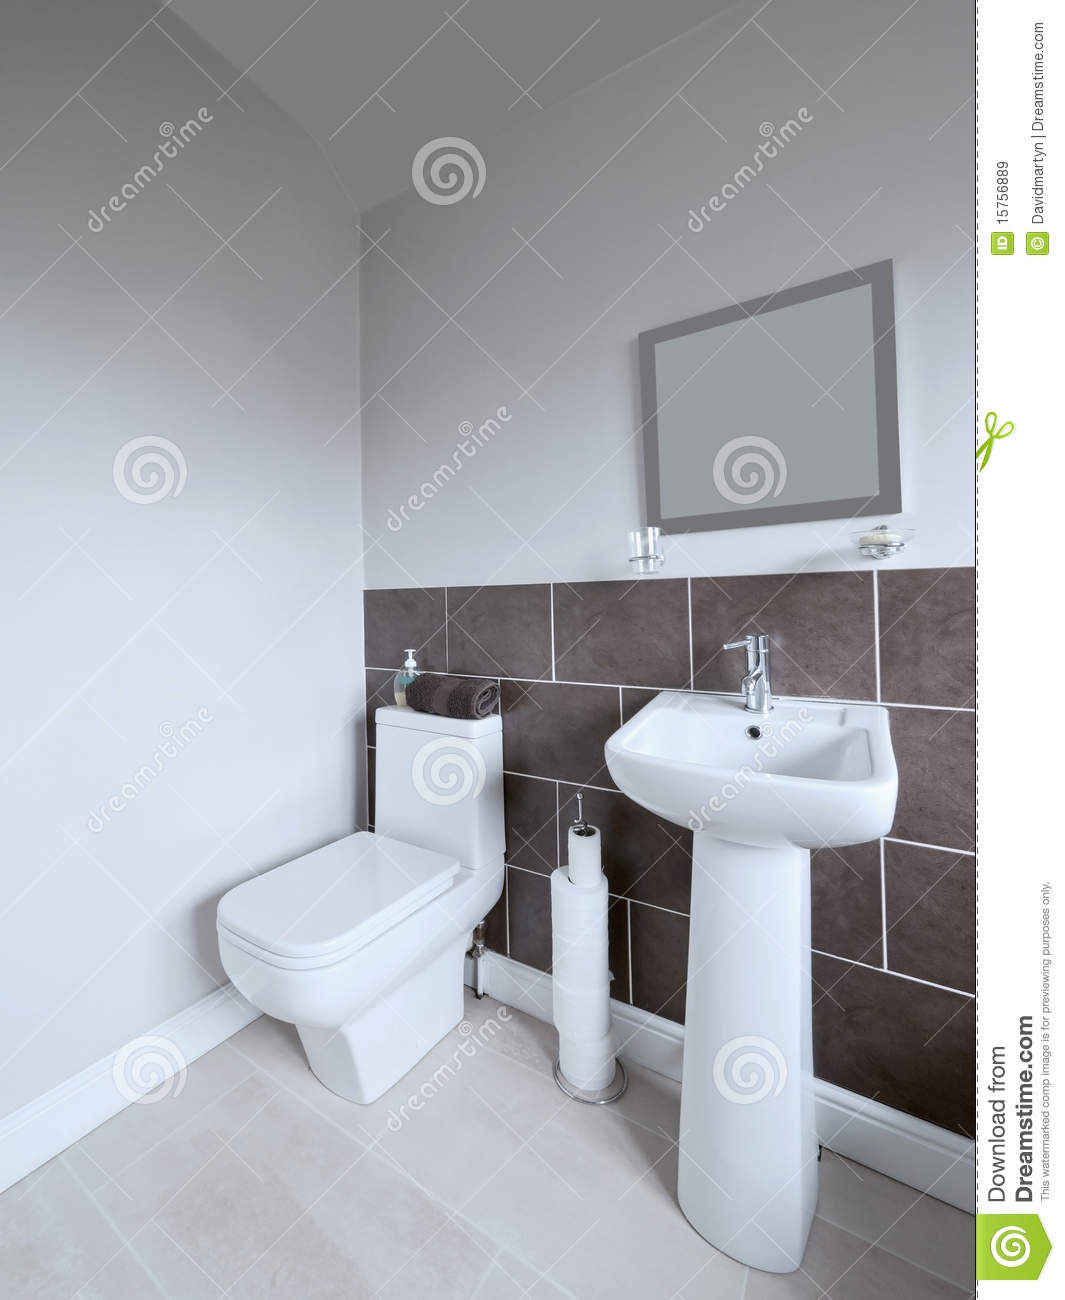 Bathroom Royalty Free Stock Images Image 15756889